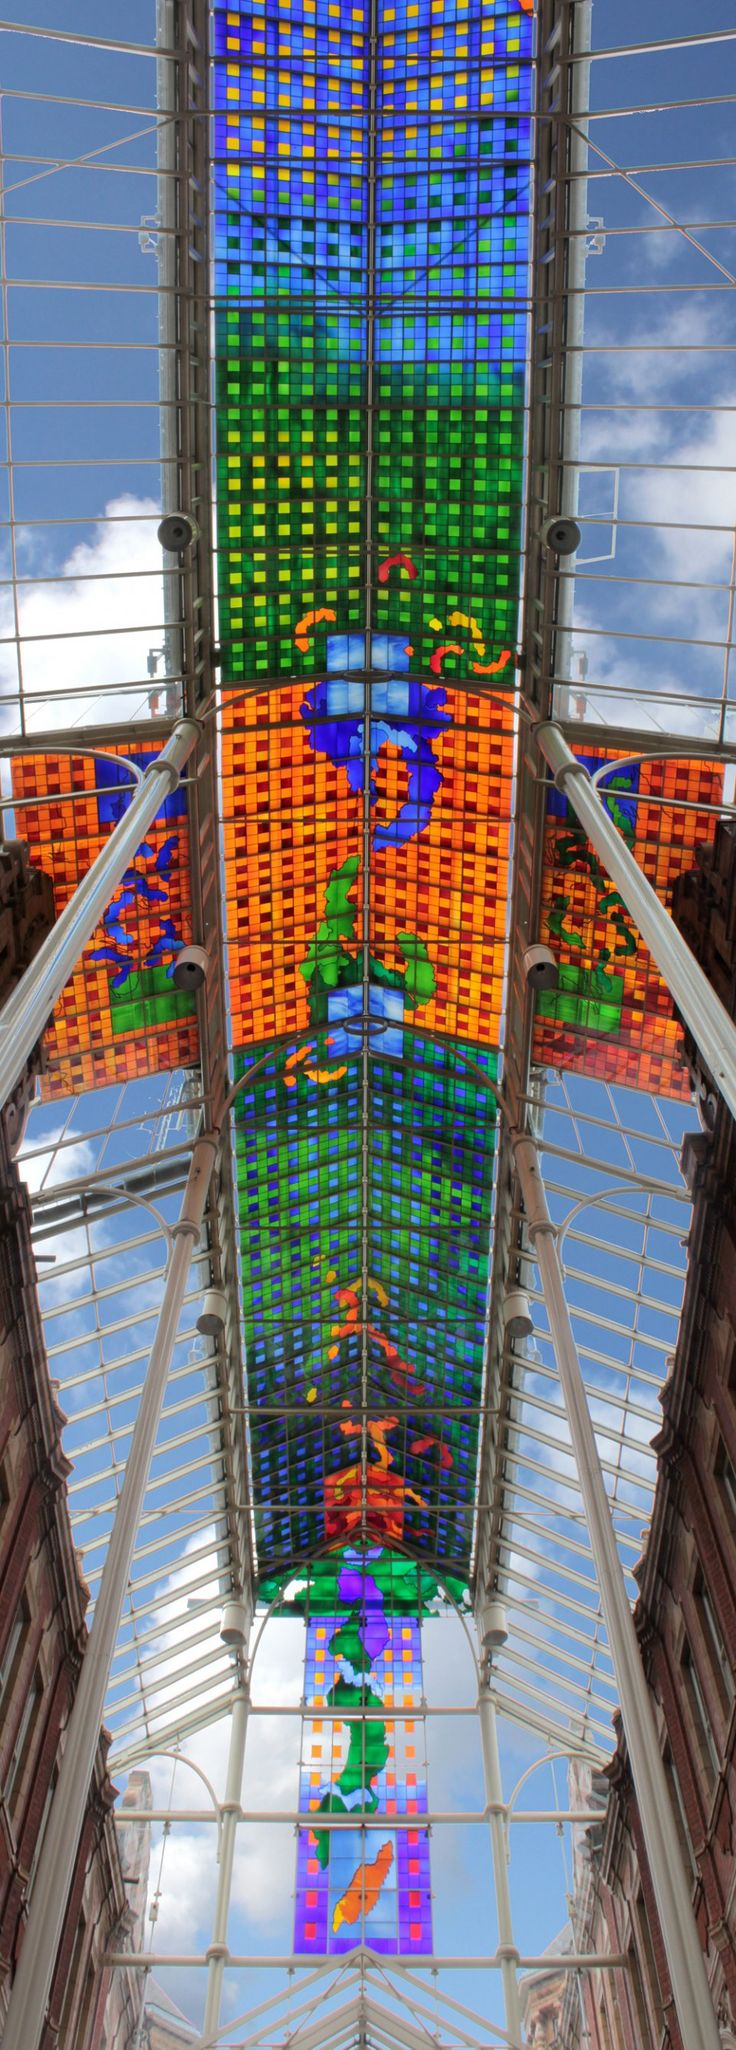 Stained glass by Brian Clarke. At Victoria Quarter, Leeds